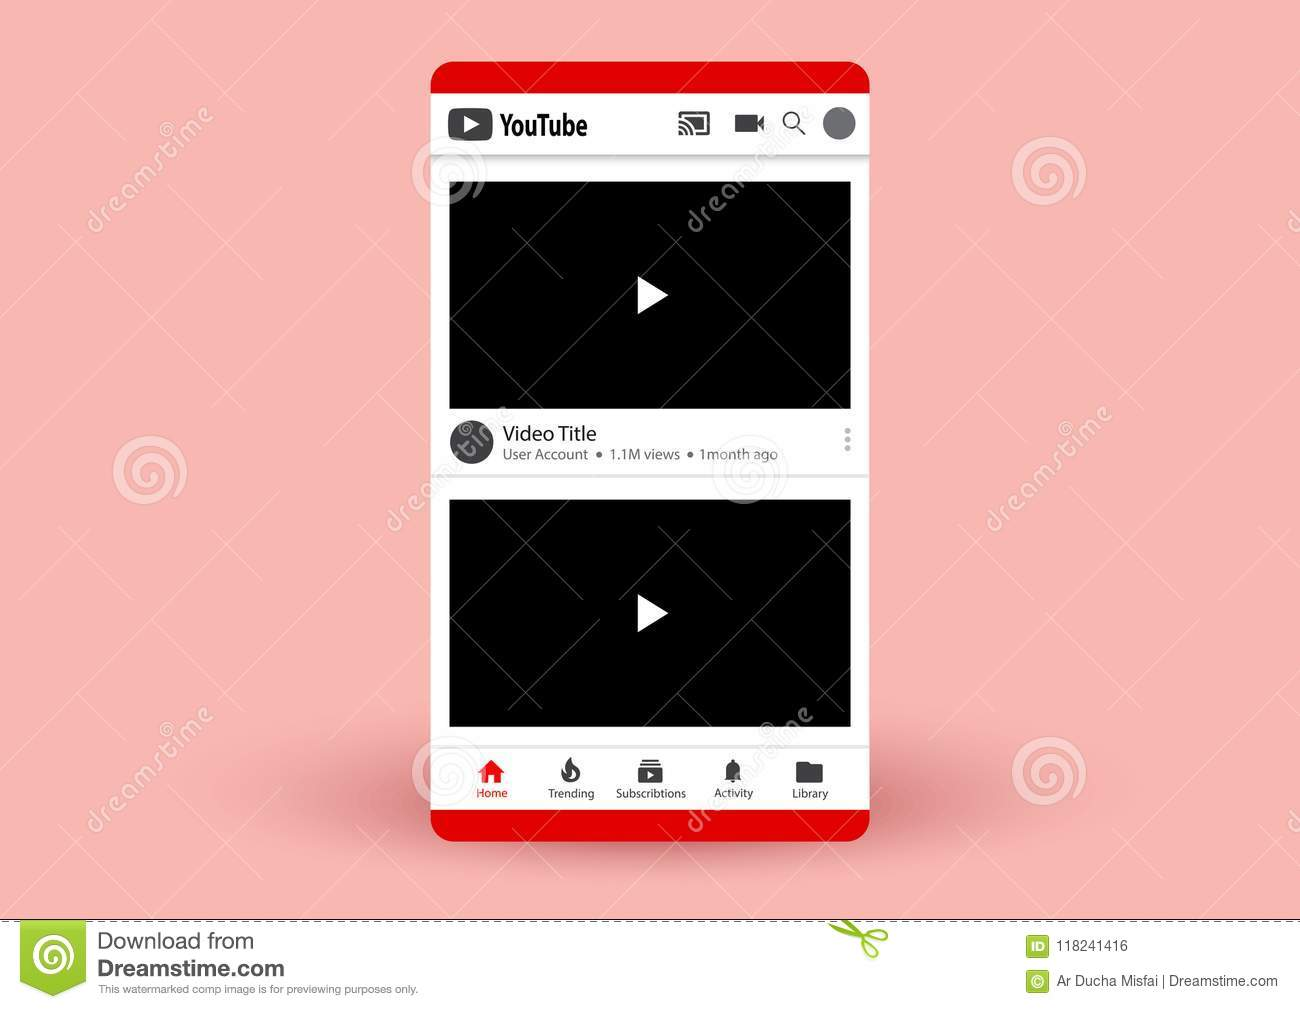 youtube hd video download application